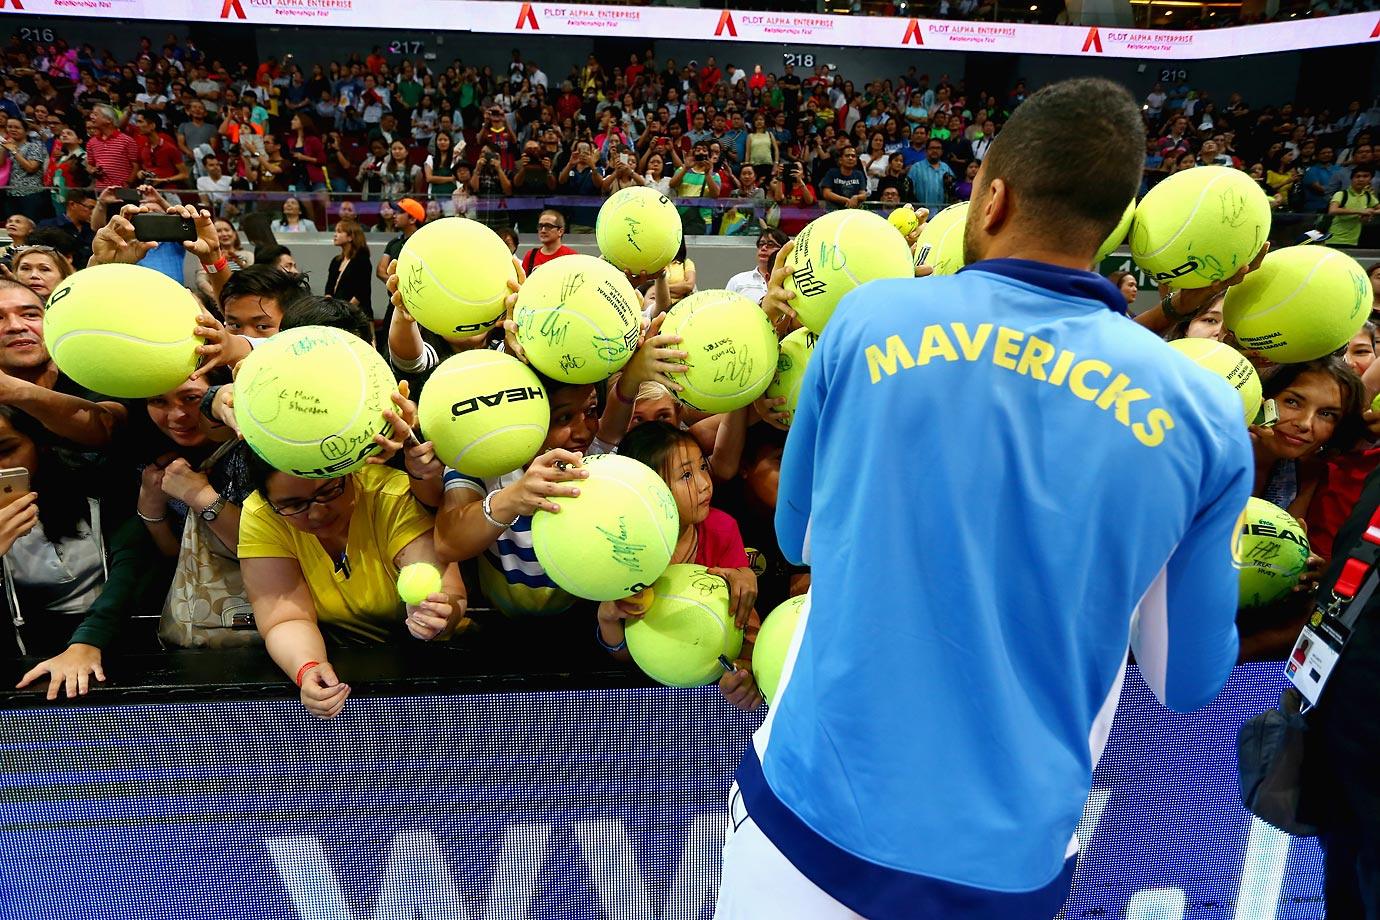 Jo-Wilfried Tsonga with fans after watching the Singapore Slammers play against the Manila Mavericks during the Coca-Cola International Premier Tennis League.